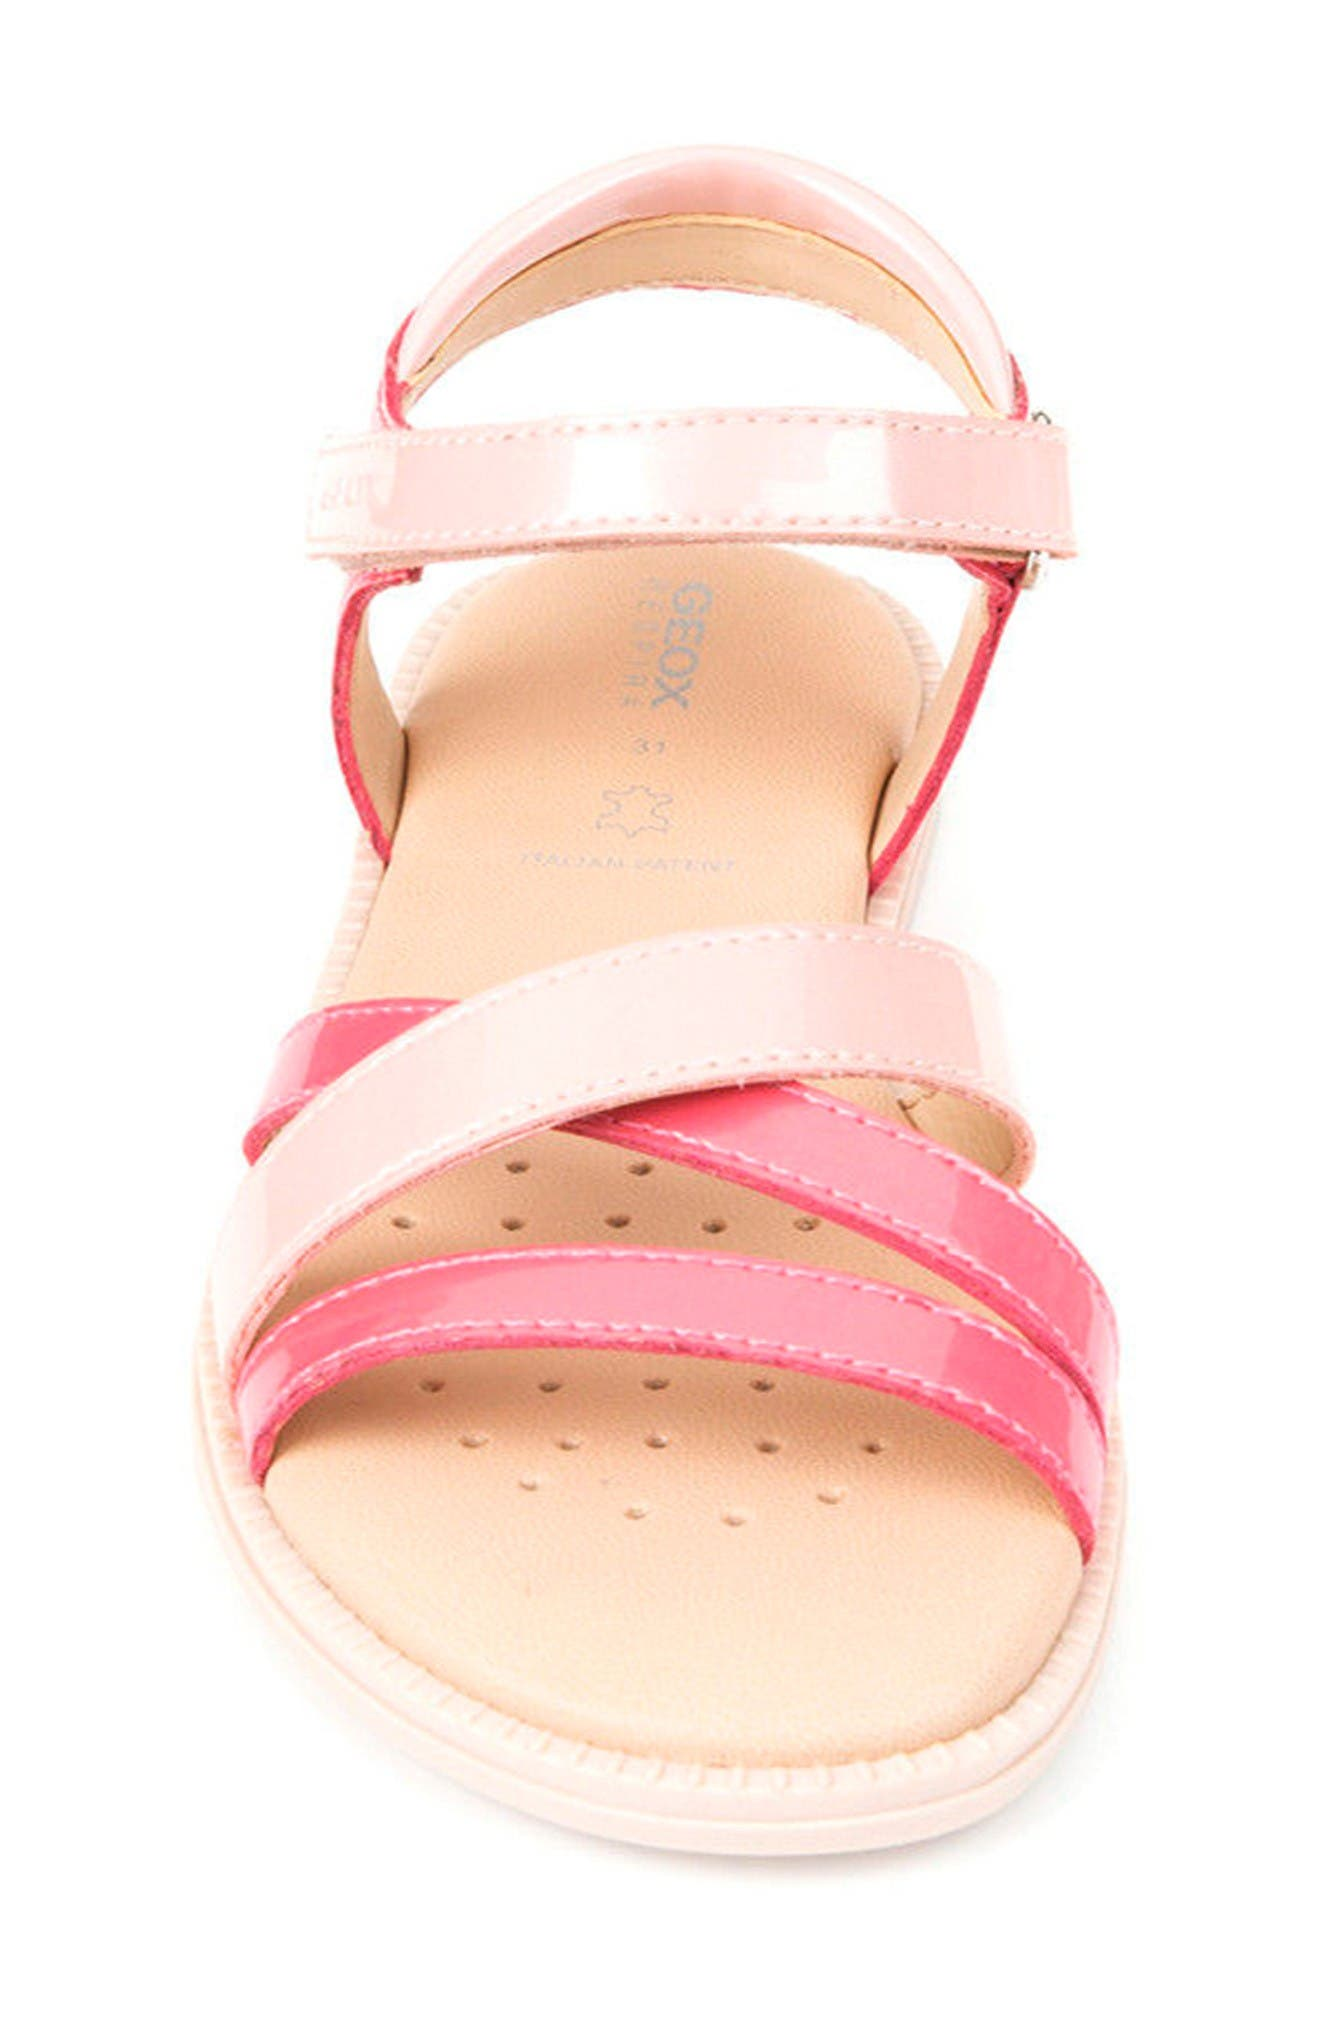 Karly Girl Sandal,                             Alternate thumbnail 4, color,                             Light Coral/ Rose